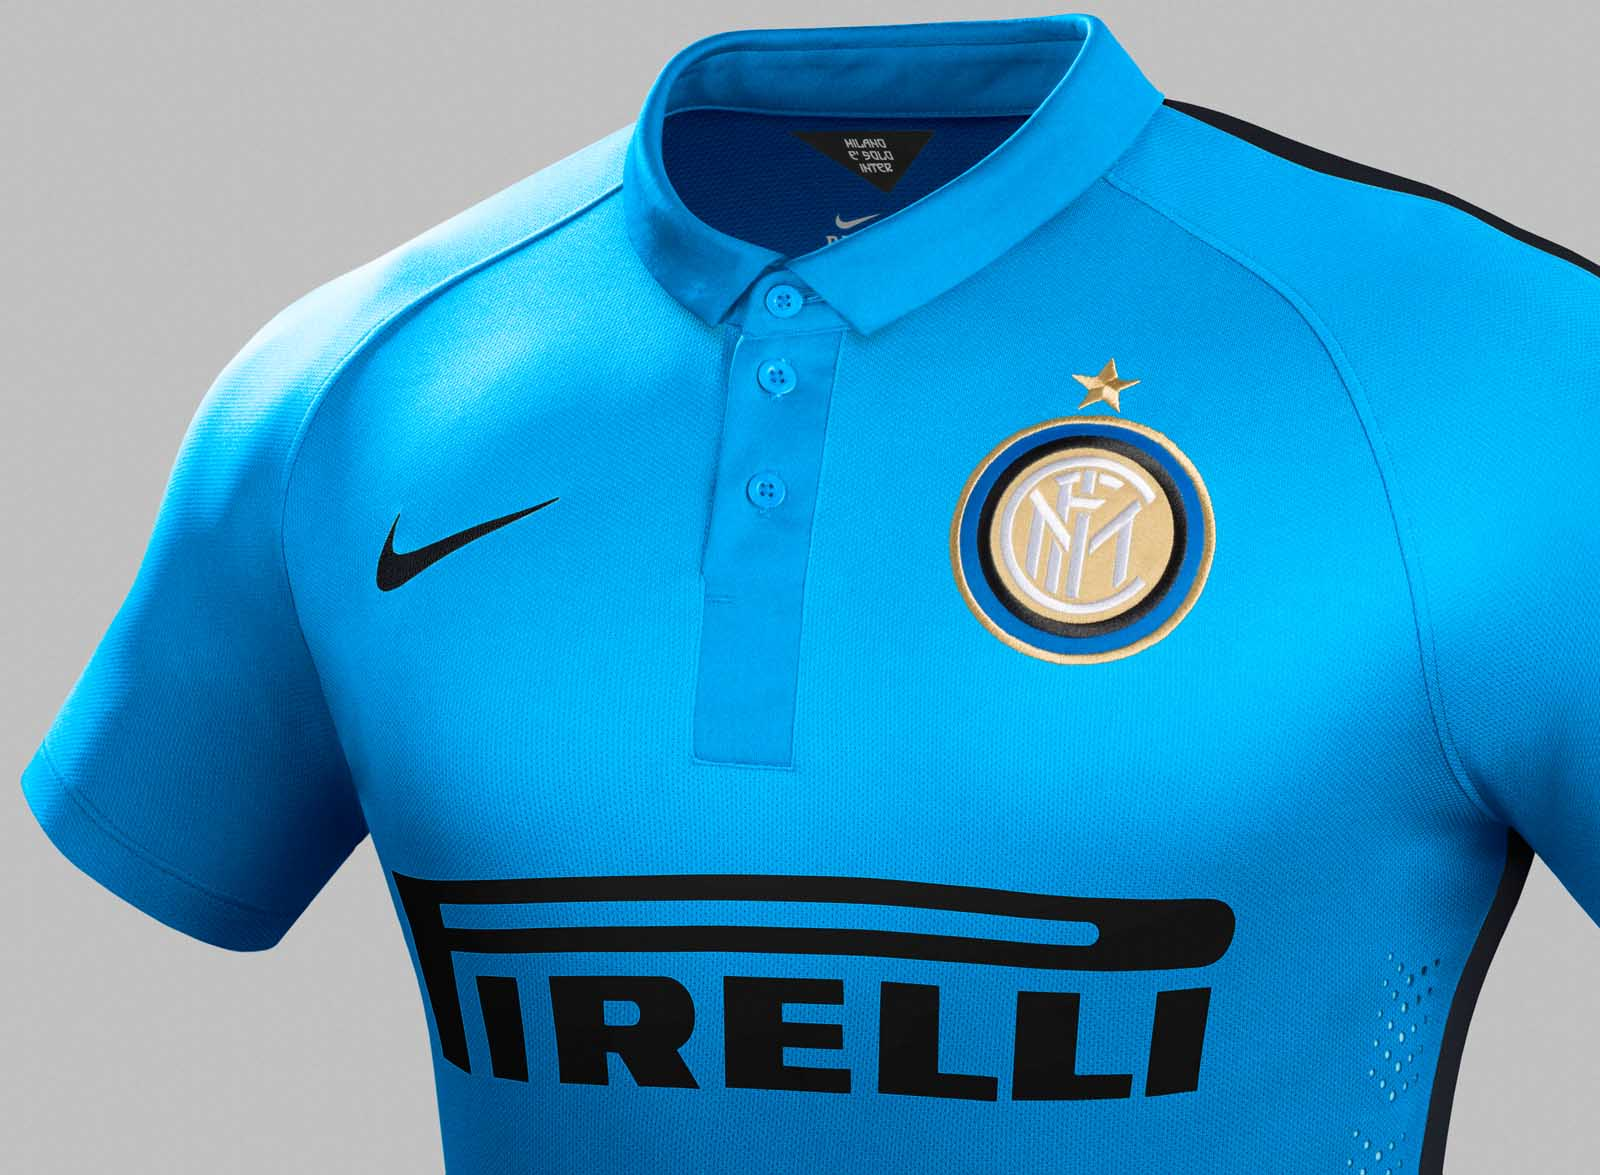 buy online 33e4a a5c3b Footy News: NEW NIKE INTER 14-15 HOME, AWAY, THIRD KITS